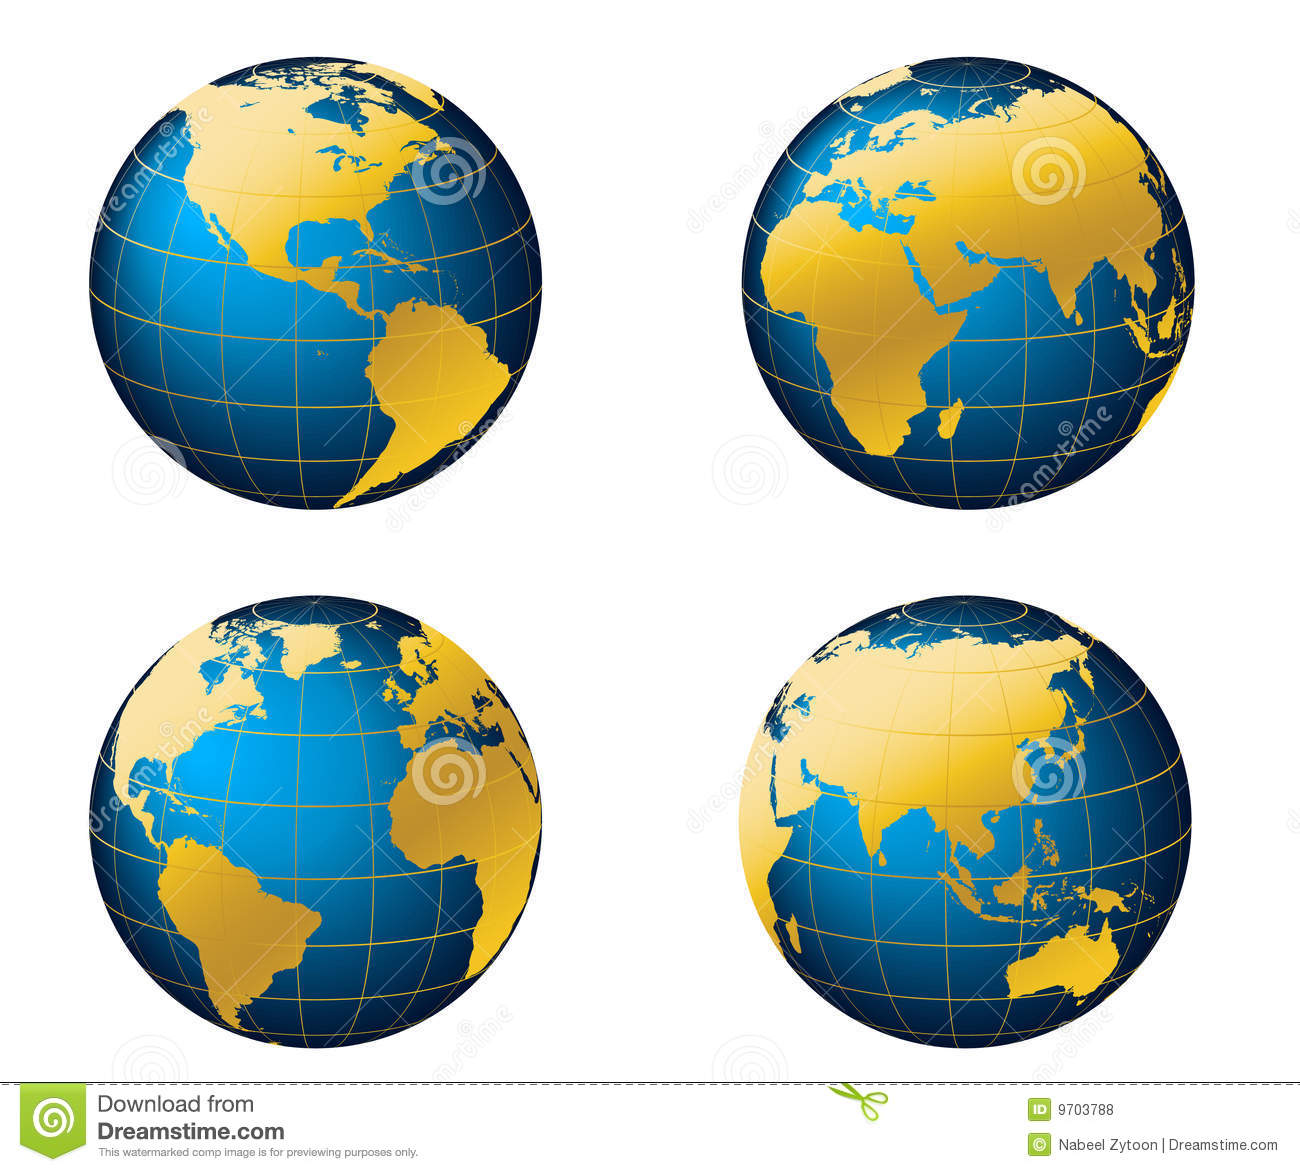 Globe Map Of The World Royalty Free Stock Photos Image - Globe map of the world